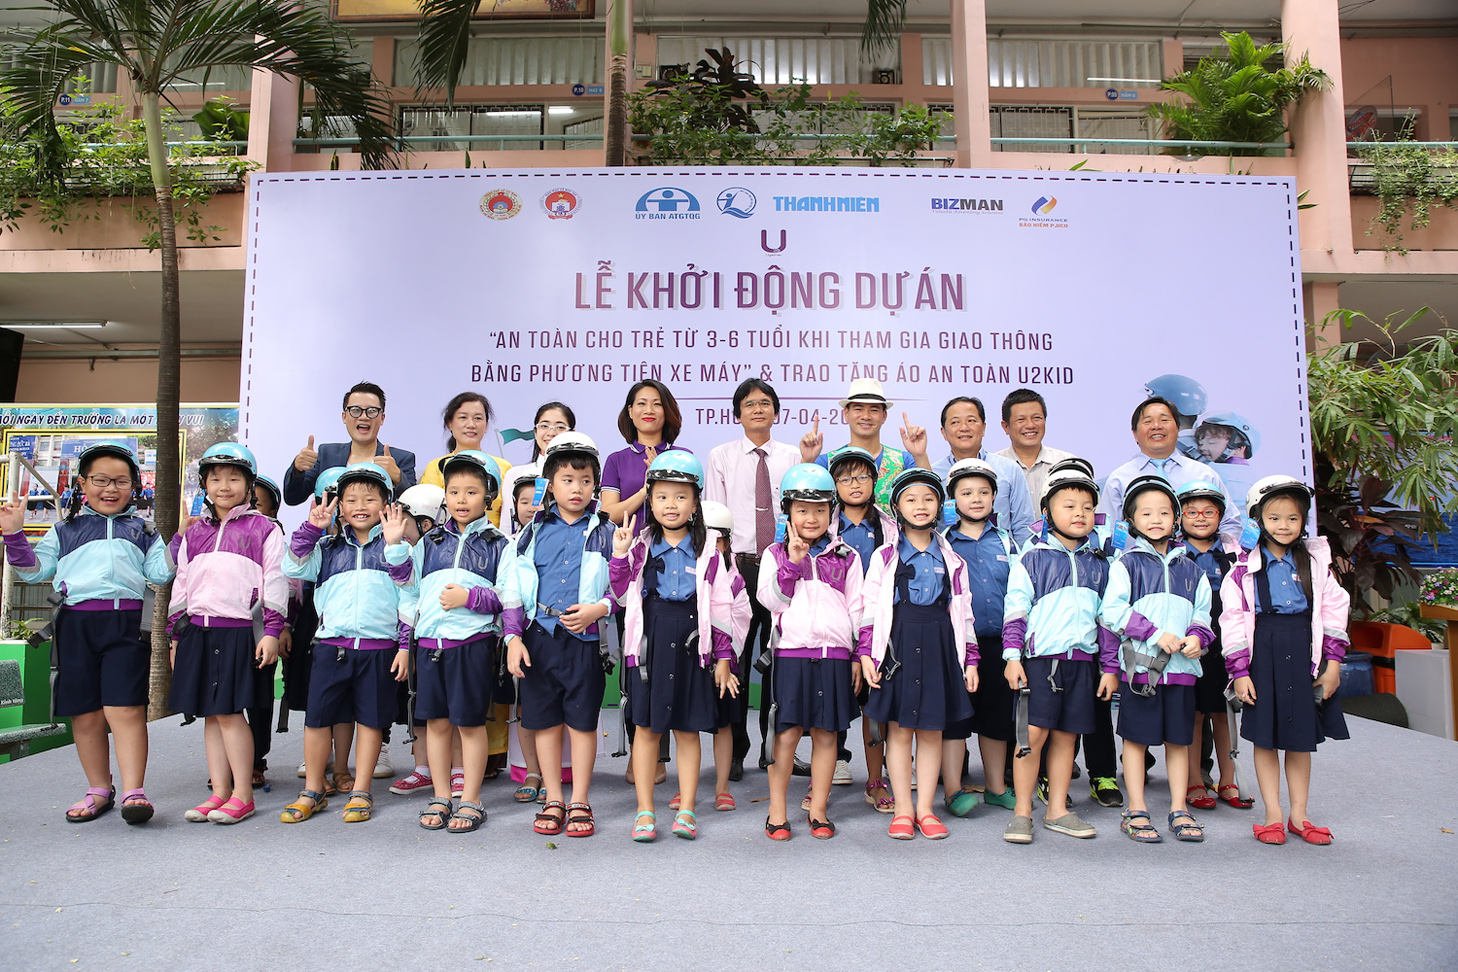 "THE LAUNCHING CEREMONY OF THE PROJECT ""SAFETY FOR 3 TO 6 YEAR-OLD CHILDREN ON TRAVELING BY MOTORBIKES"" & DONATION OF U2KID SAFETY CLOTHINGS, HELMETS"